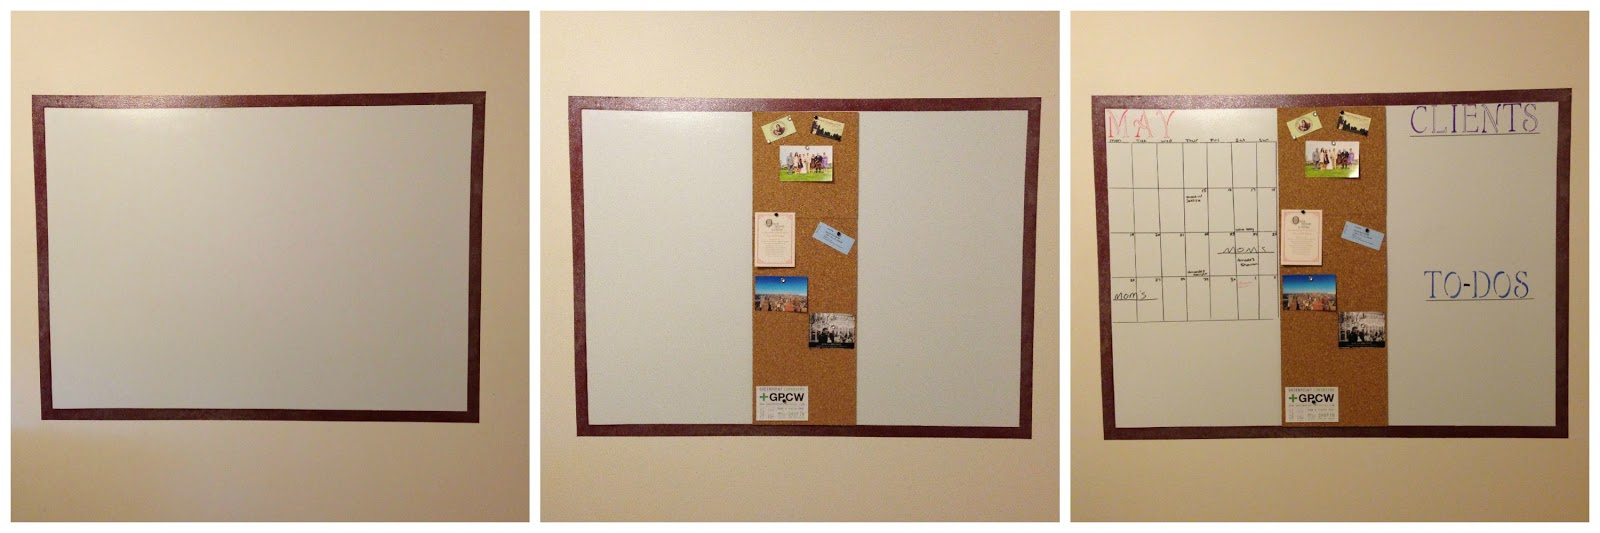 DIY Whiteboard-For Home Office | Moving to NYC 101